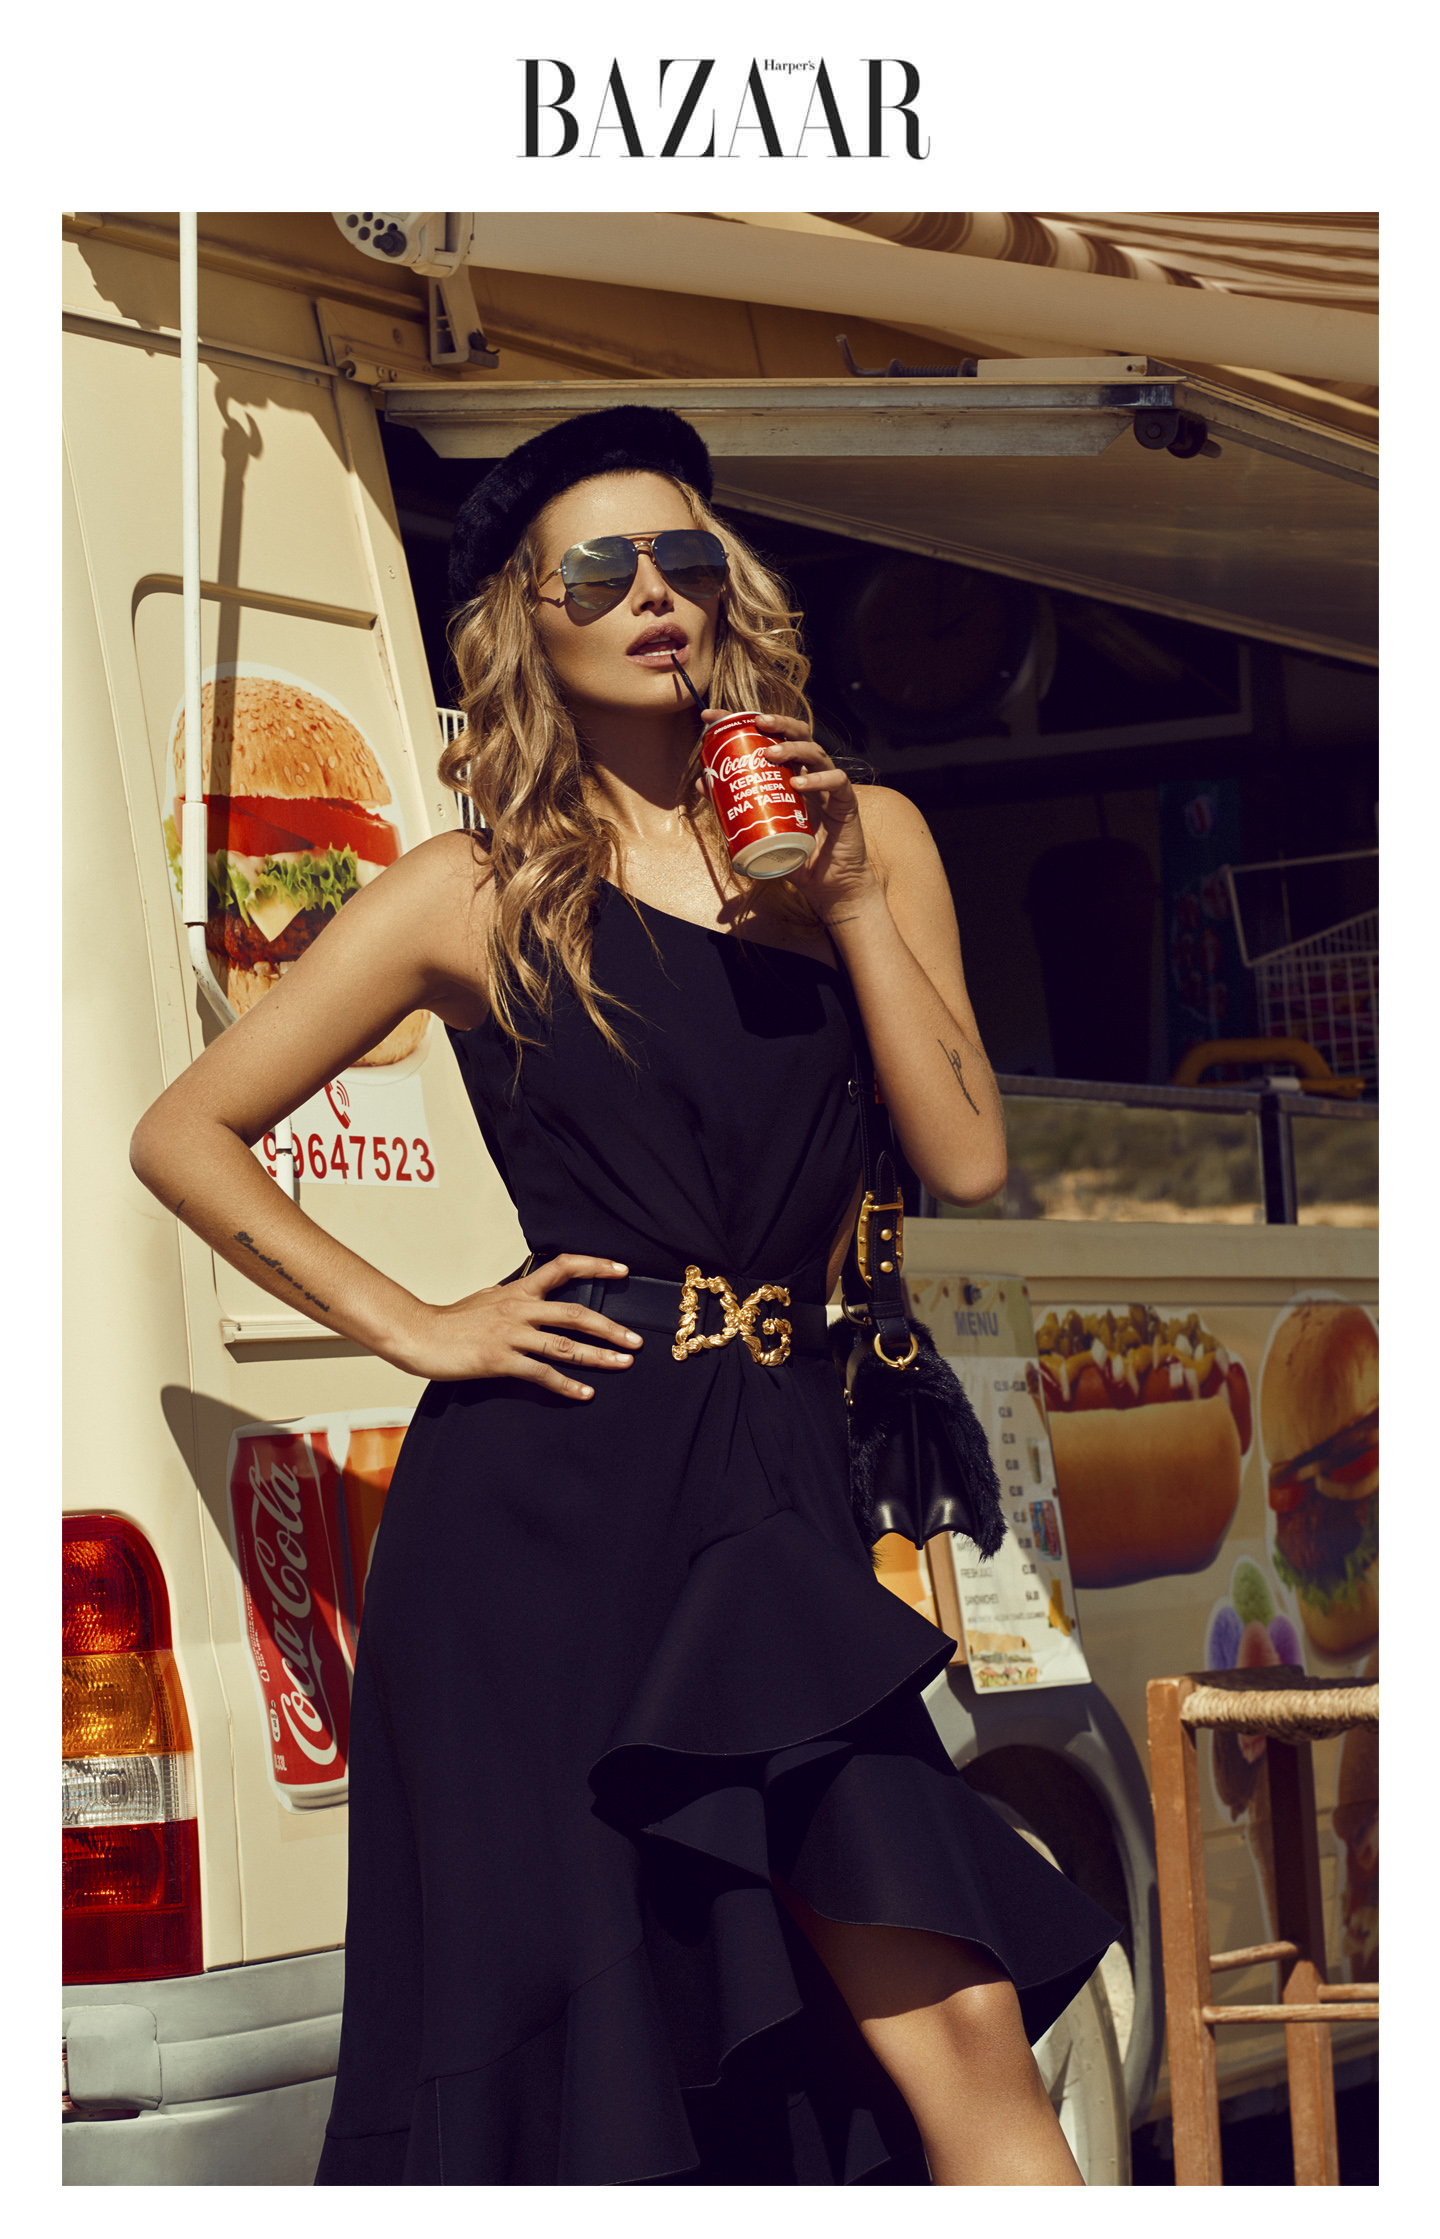 fashion editorial Cheyenne Tozzi by Stefan Imielski for Harper's Bazaar